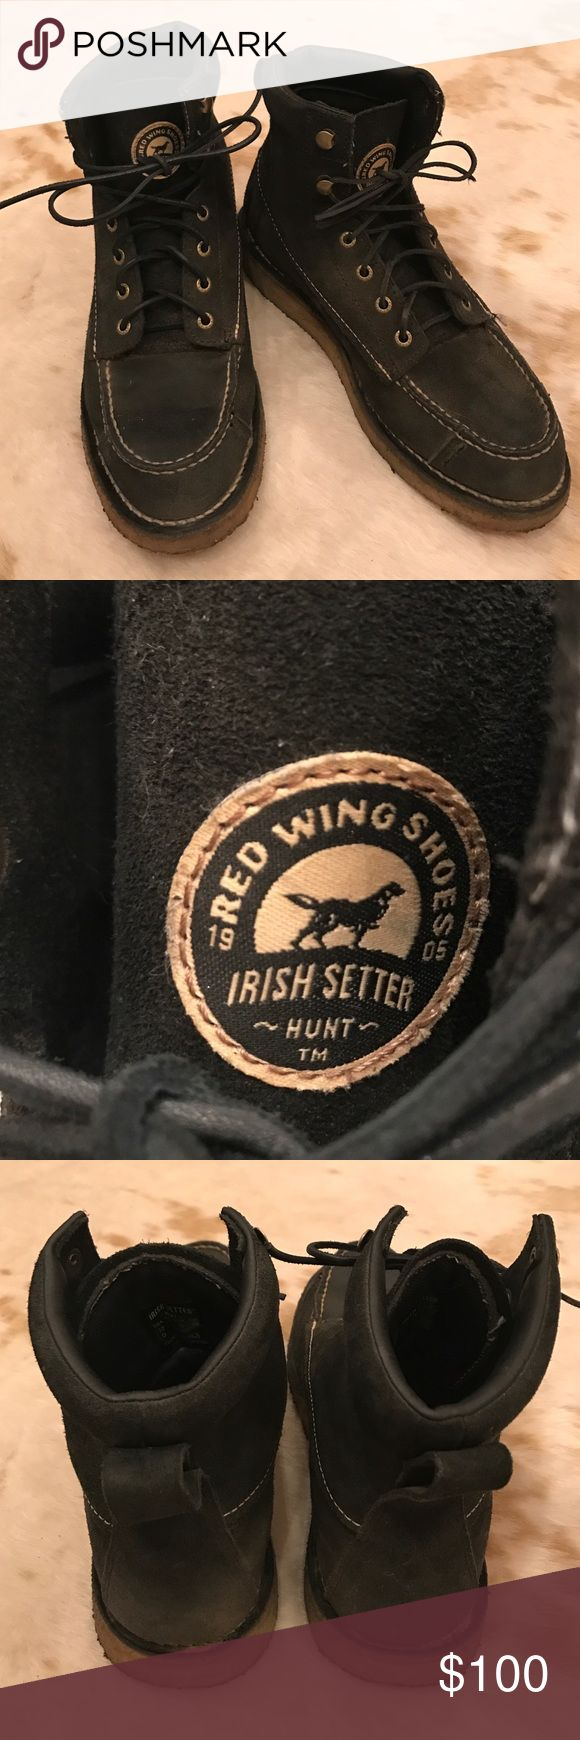 Red Wing Irish Setter Rare! Black suede Red Wing Irish Setter Hunt boots men's size 10 barely worn stock no. 3826 Red Wing Shoes Shoes Boots